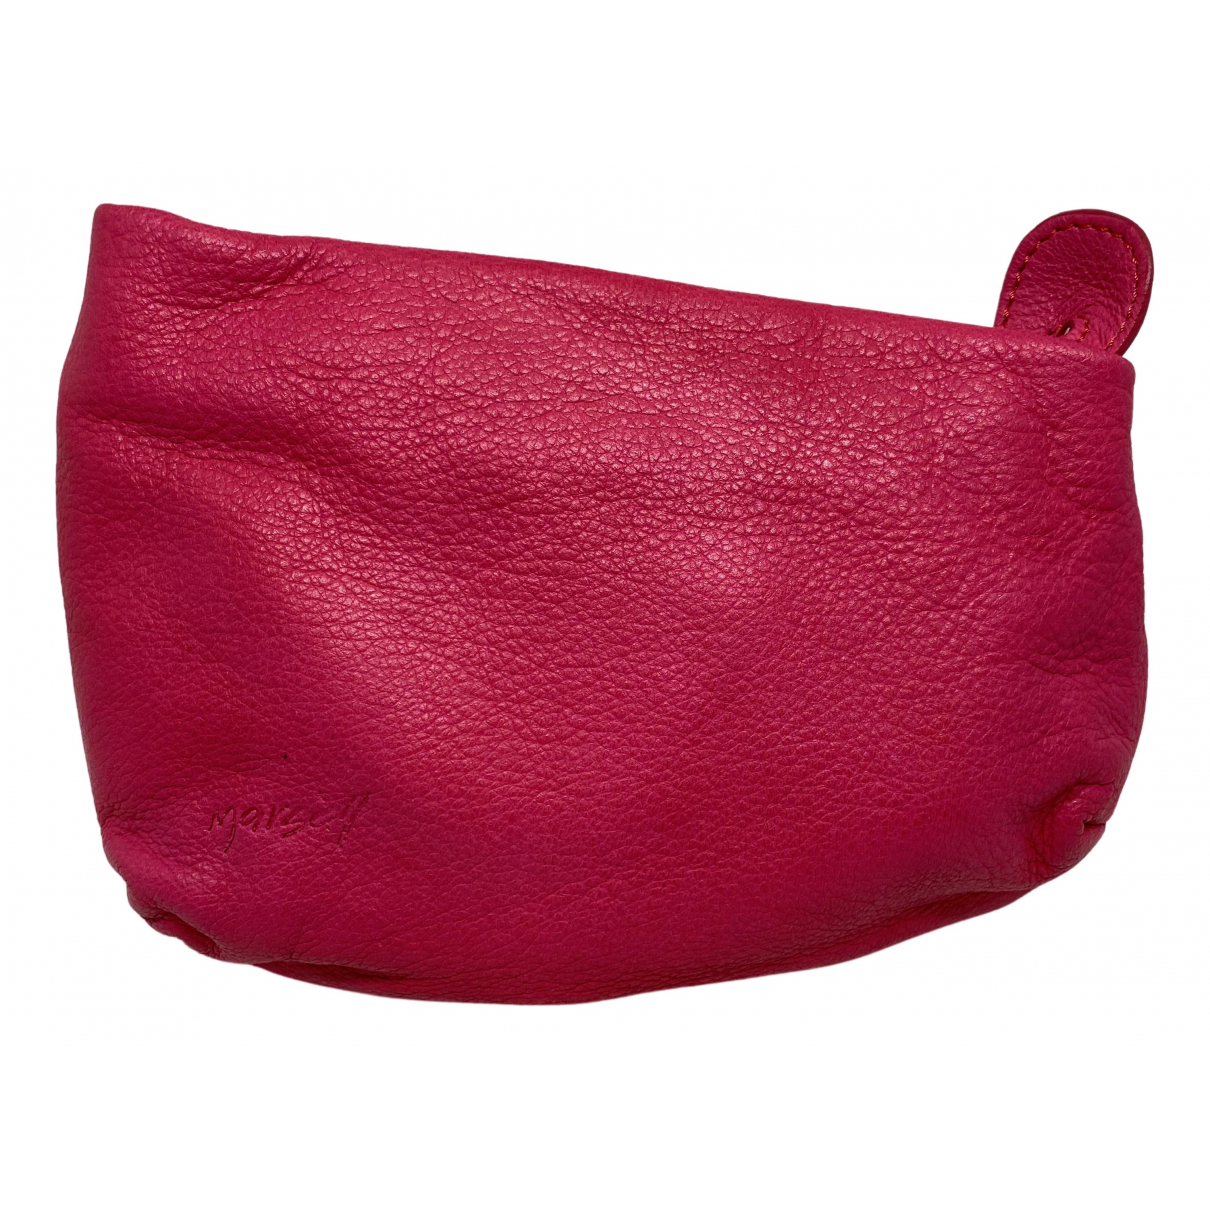 Marsell \N Clutch in  Rot Leder